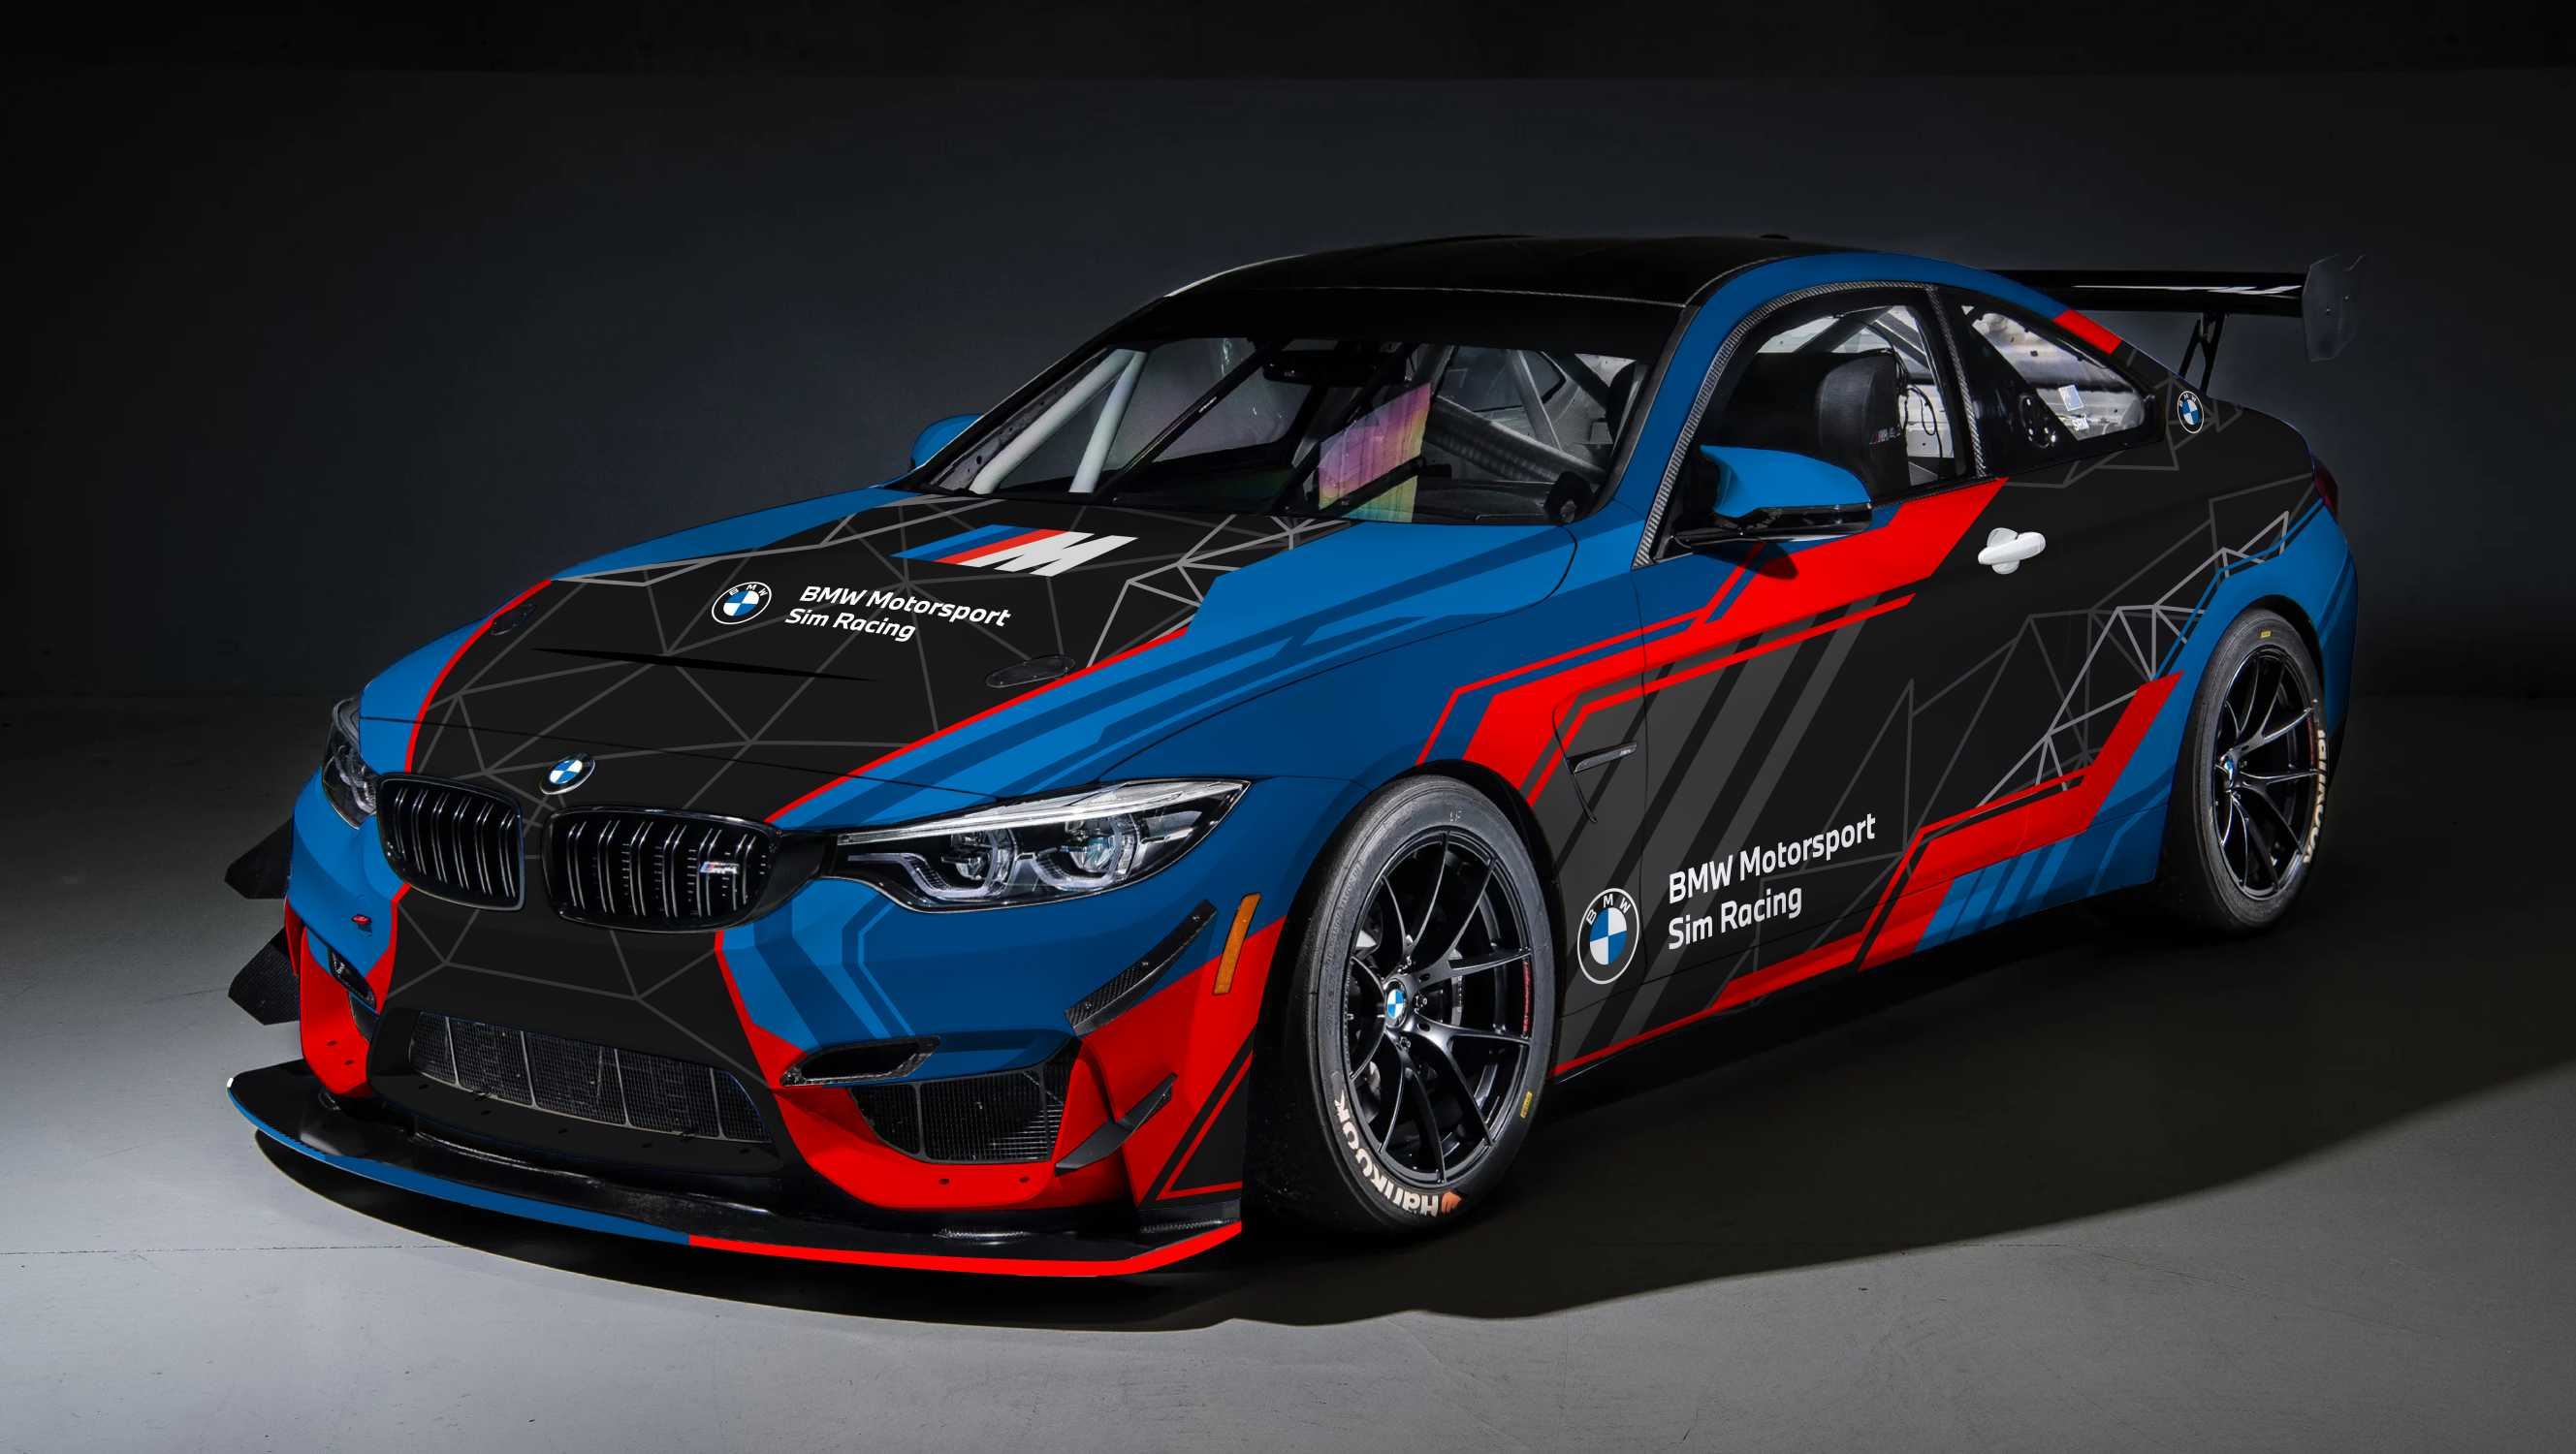 A real masterpiece: Winner of the BMW M4 GT4 livery ...